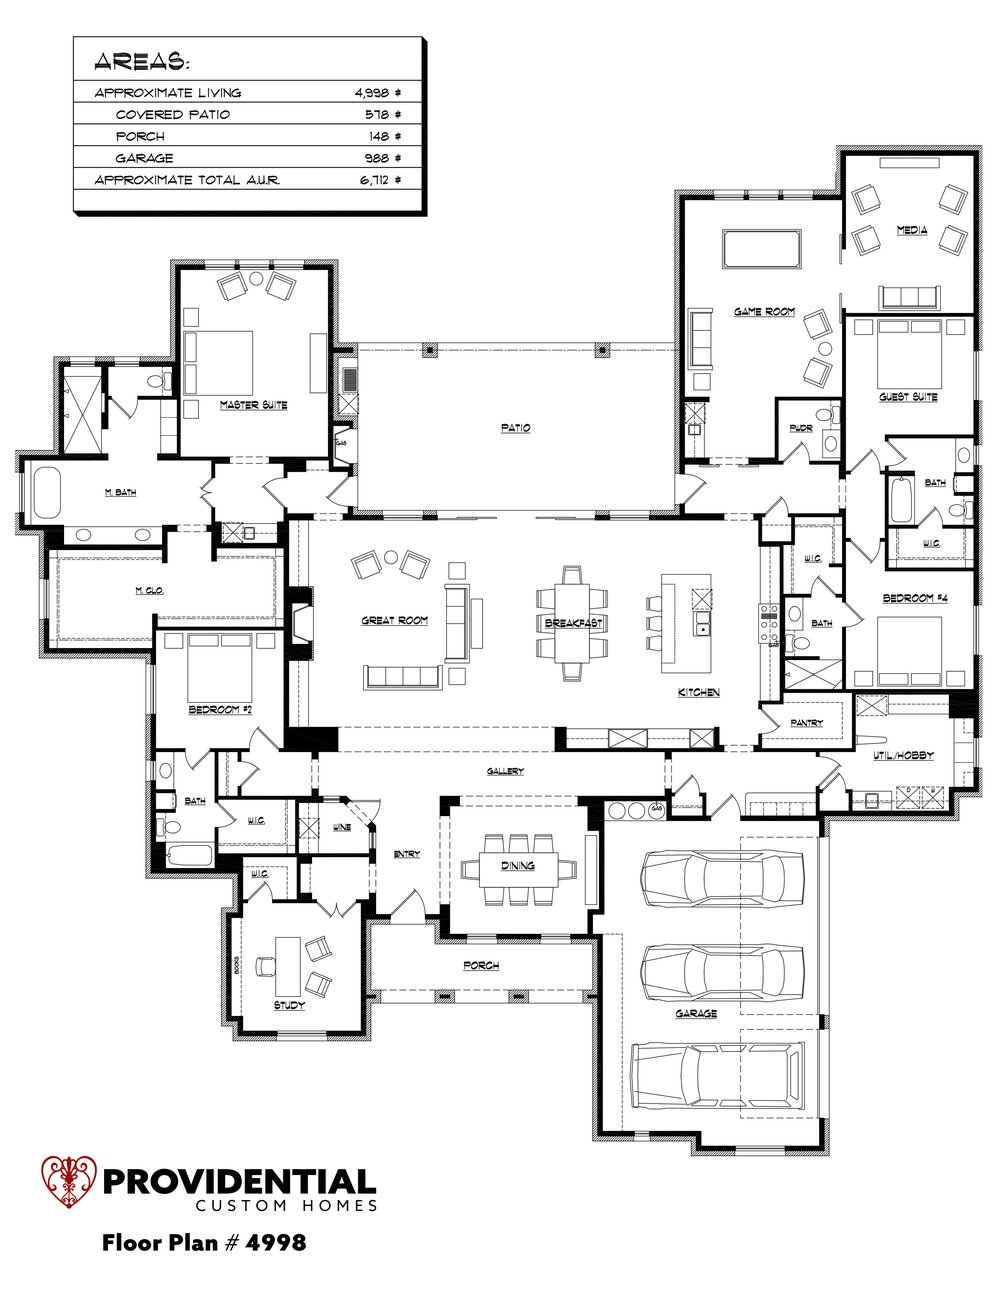 The FLOOR PLAN #4998.jpg